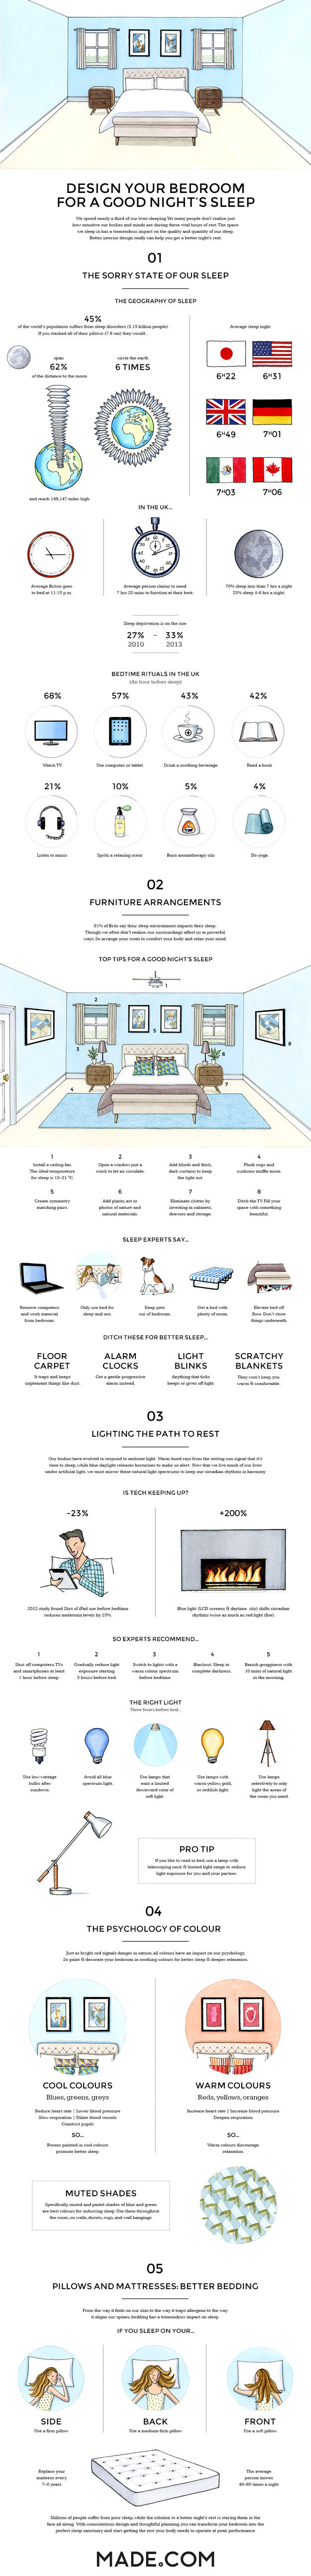 AD-Charts-That-Will-Help-You-Sleep-Better-11